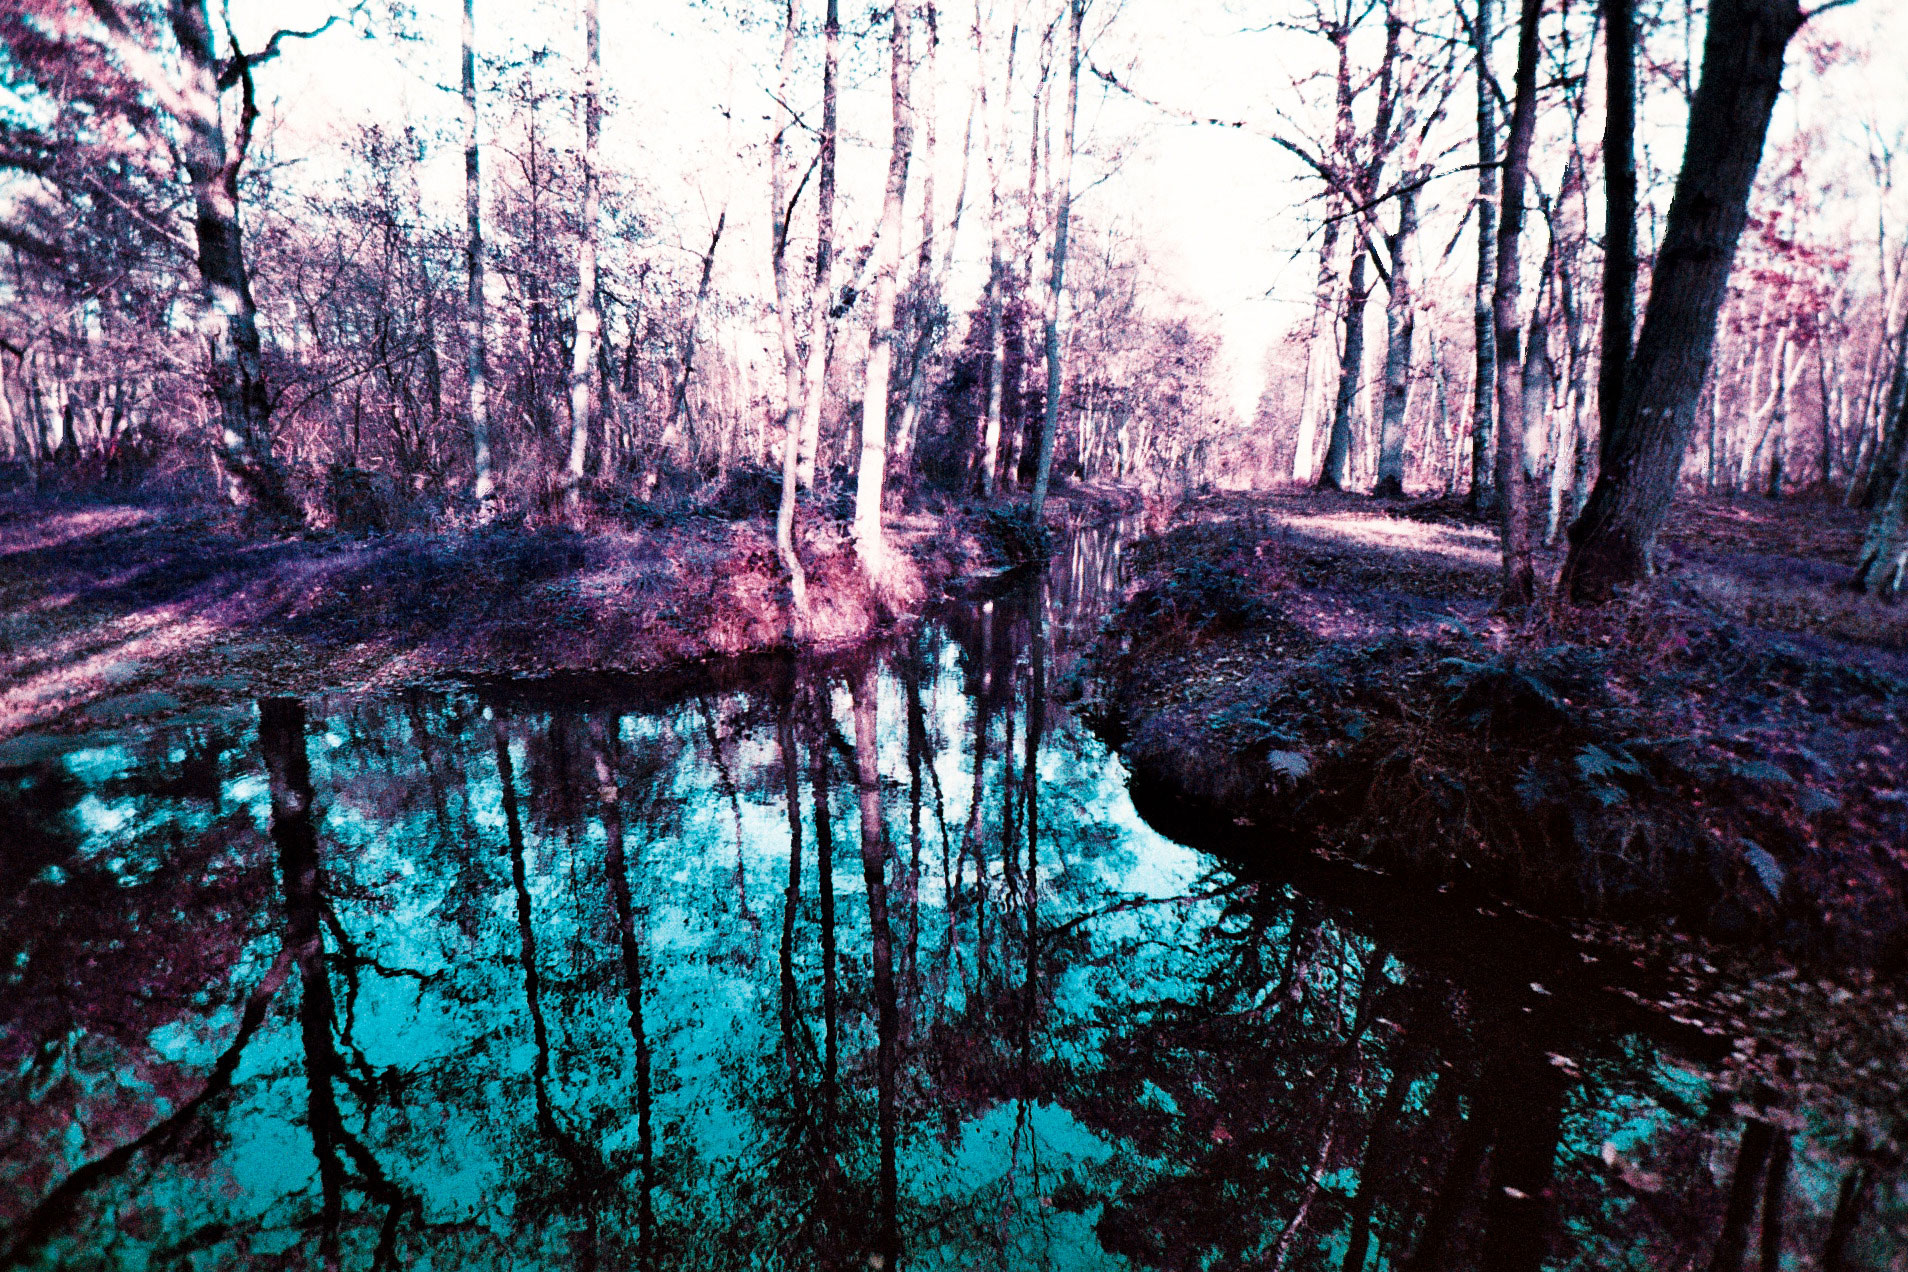 03_EOS1N_LOMOCHROME_PURPLE_200_copyright_ThomasApp.jpg